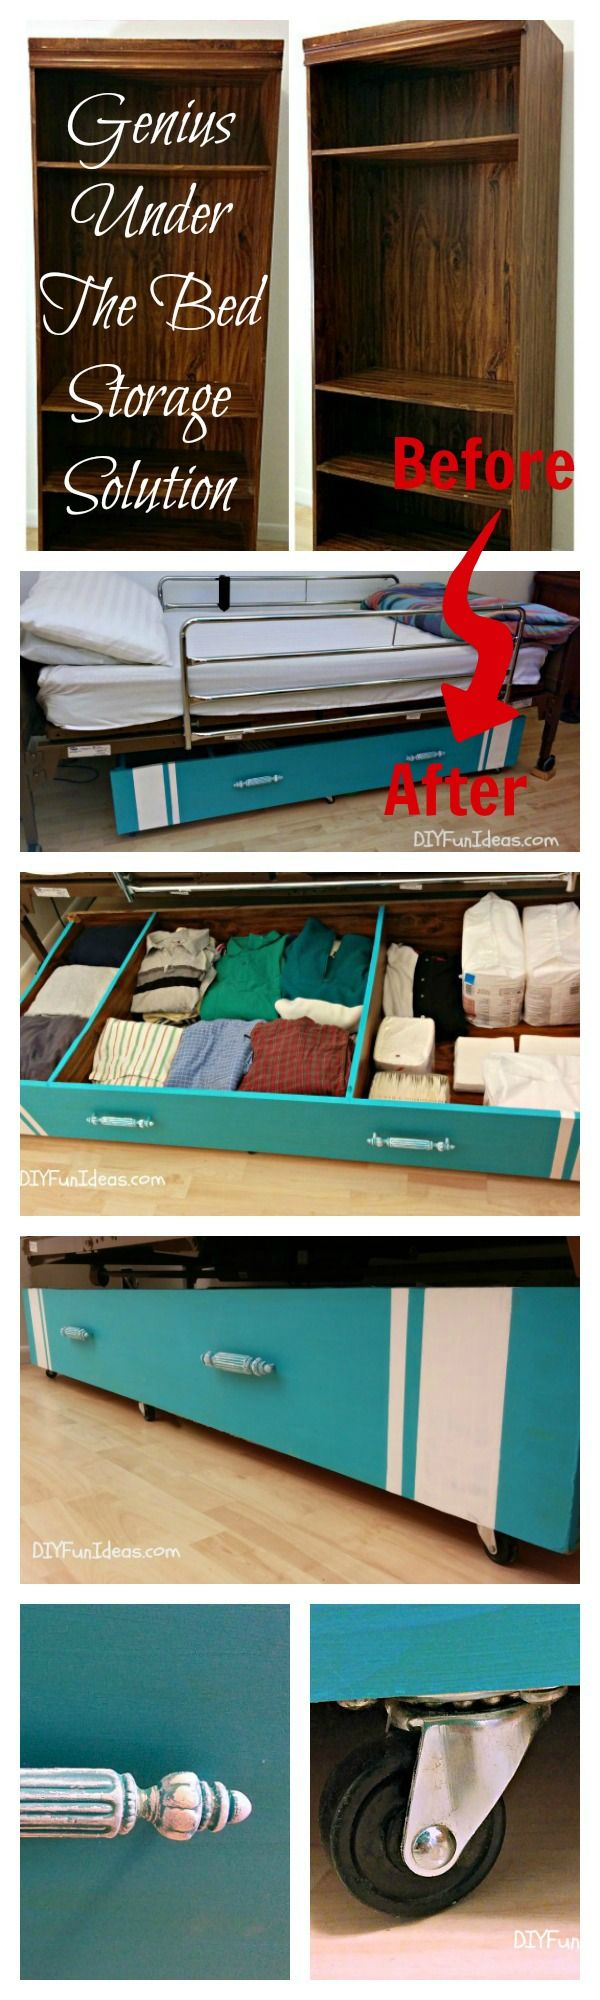 Genius Diy Under The Bed Storage Home Projects Old Bookshelves Organization Bedroom